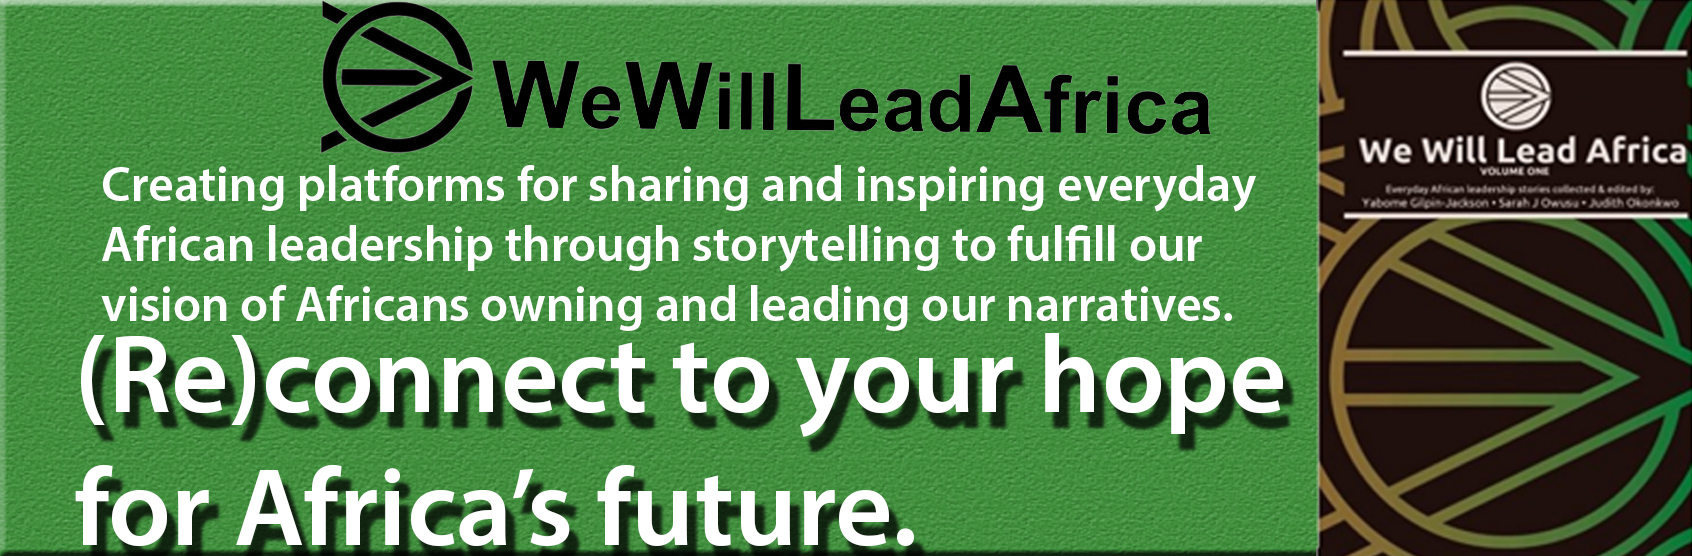 We_Will_Lead_Africa_ARU